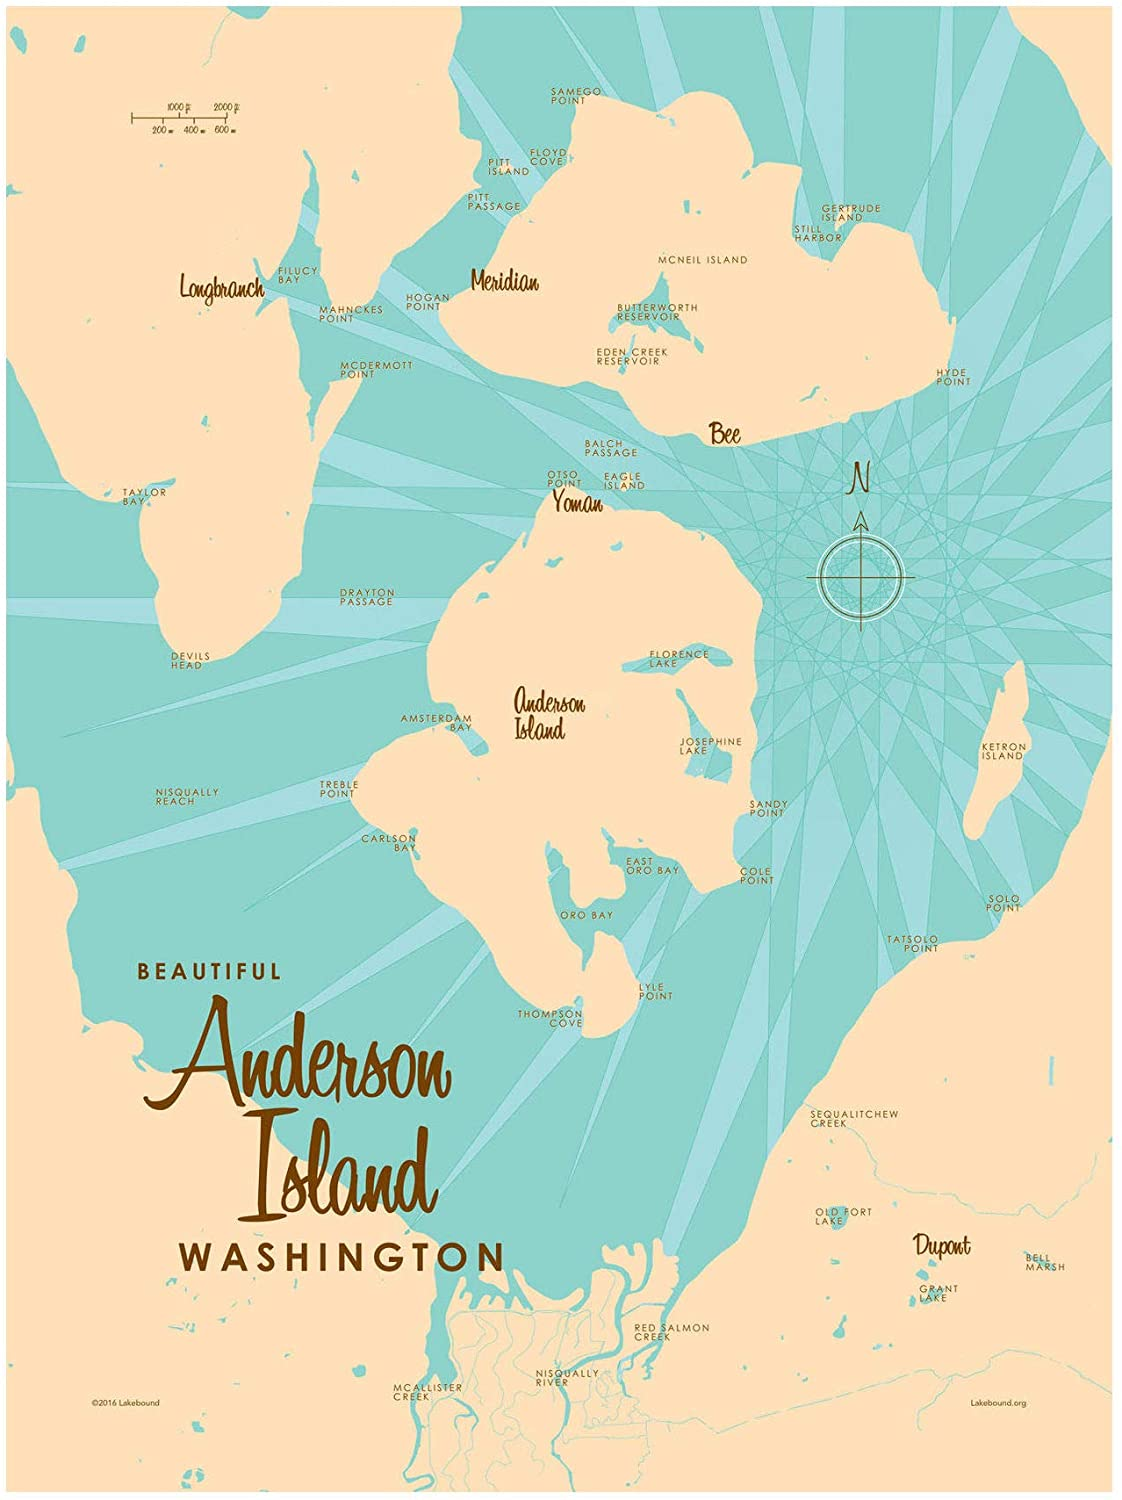 Anderson Island Washington Map Giclee Art Print Poster by Lakebound 9 x 12